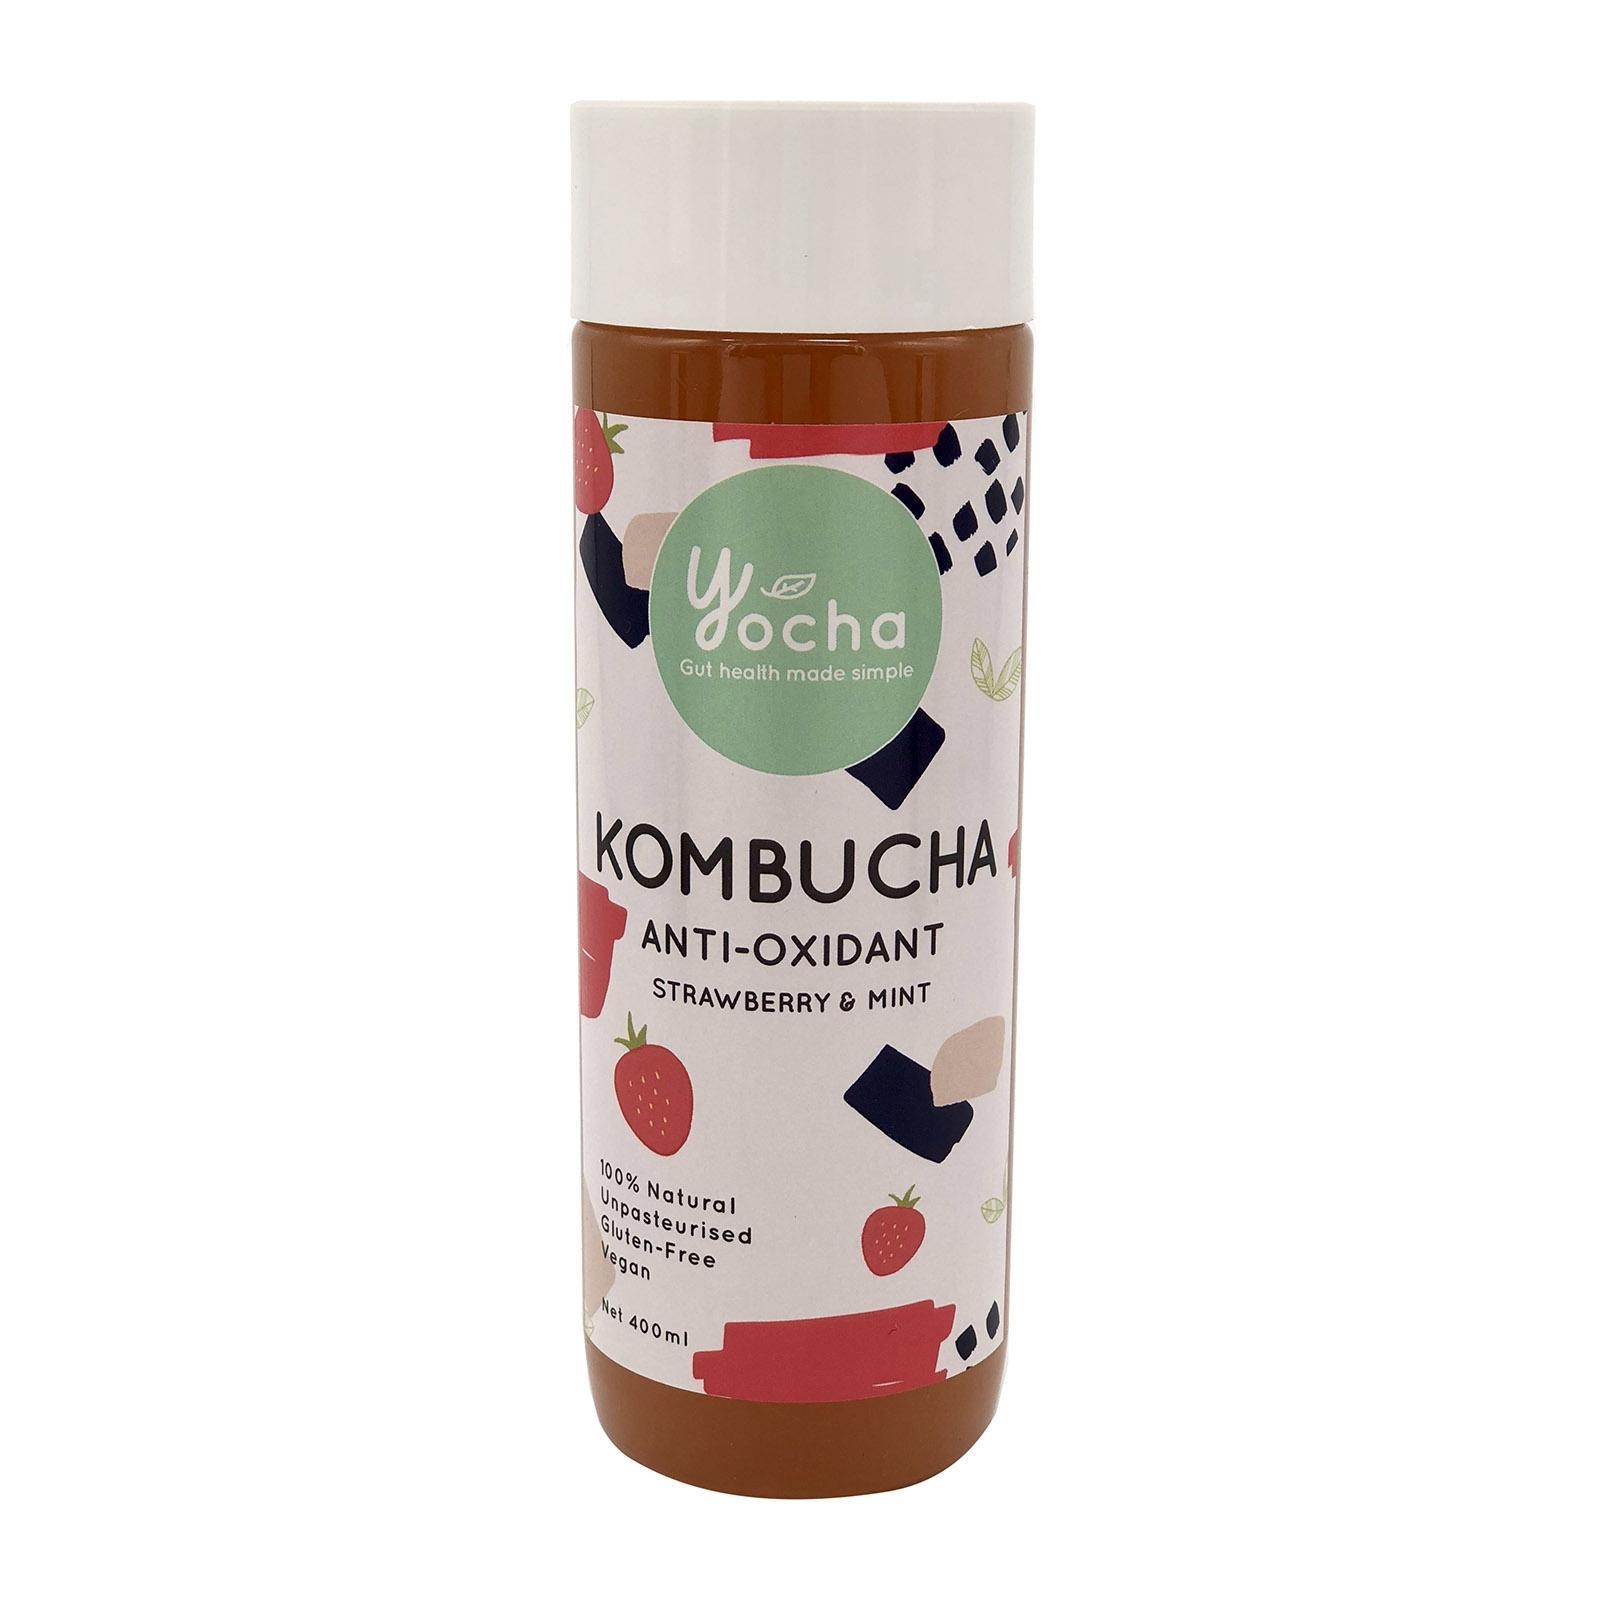 Yocha Kombucha Anti-Oxidant - Strawberry And Mint By Redmart.